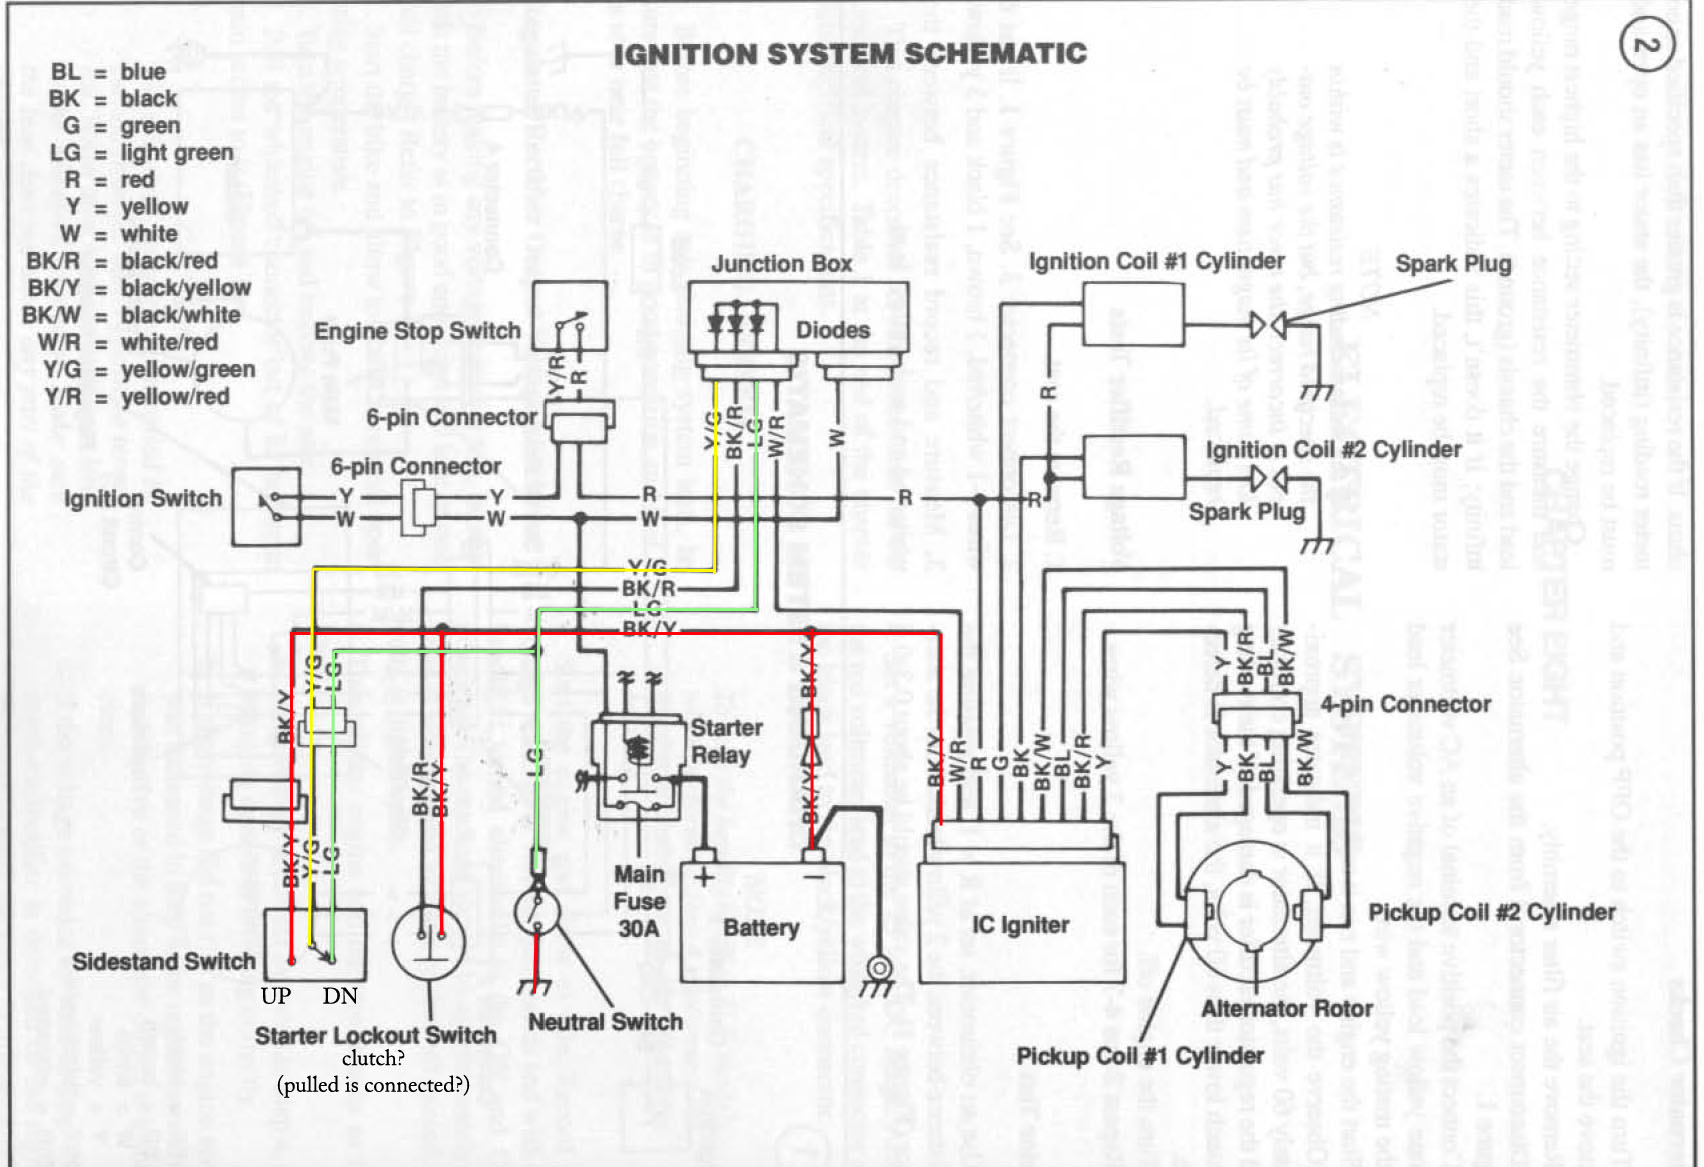 Wiring Diagram Of Ignition System : Kawasaki wiring schematics for ignition get free image